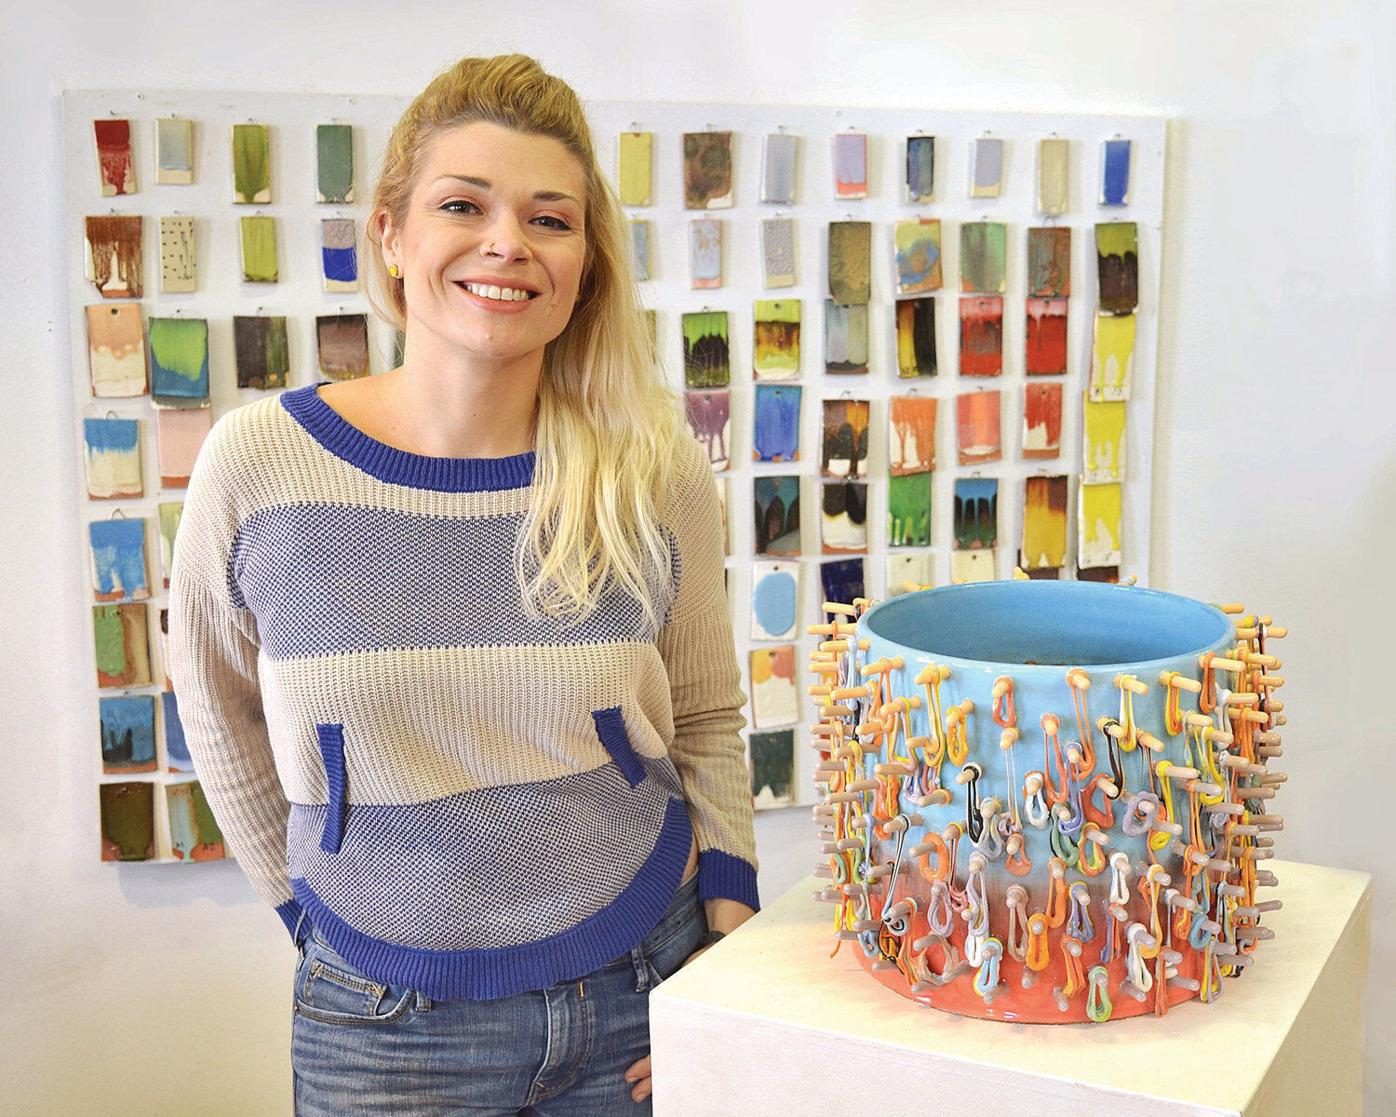 'A rising star in the ceramics world'